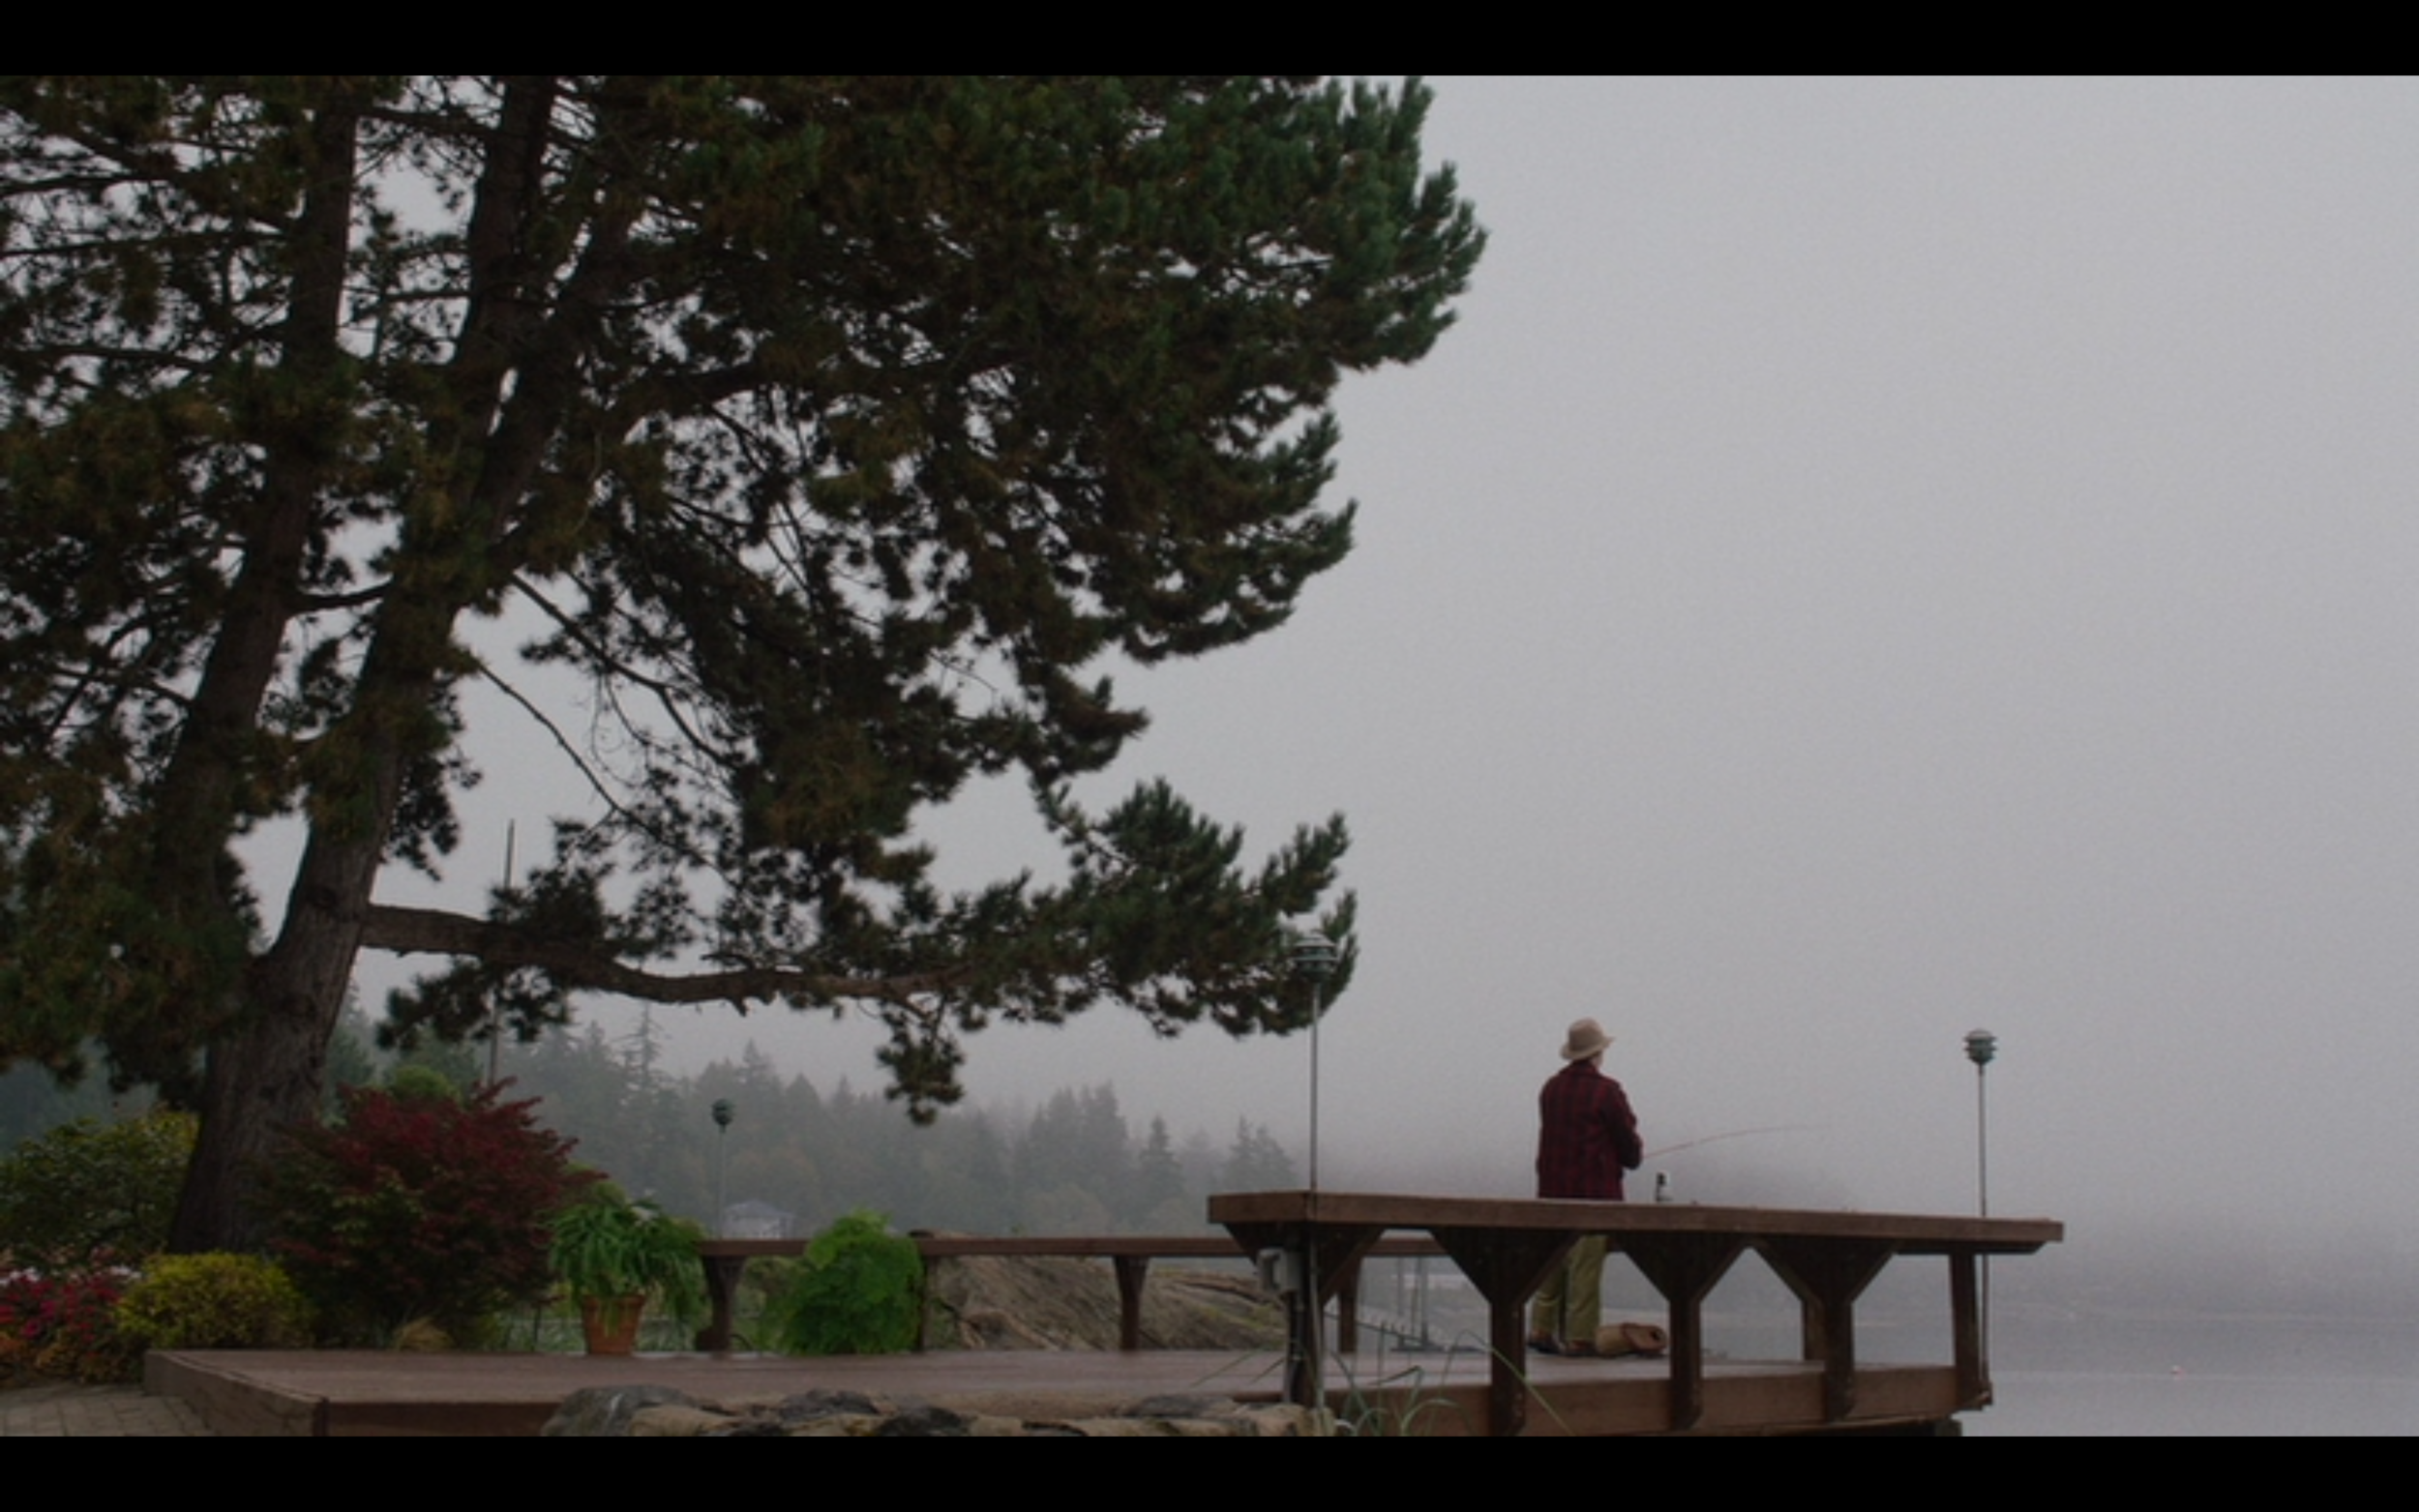 Figure 5: Pete Martell fishes from a pier in Twin Peaks and does not discover Laura Palmer's body in  Twin Peaks  season 3 episode 17, whereas he did in  Twin Peaks  season 1 episode 1.